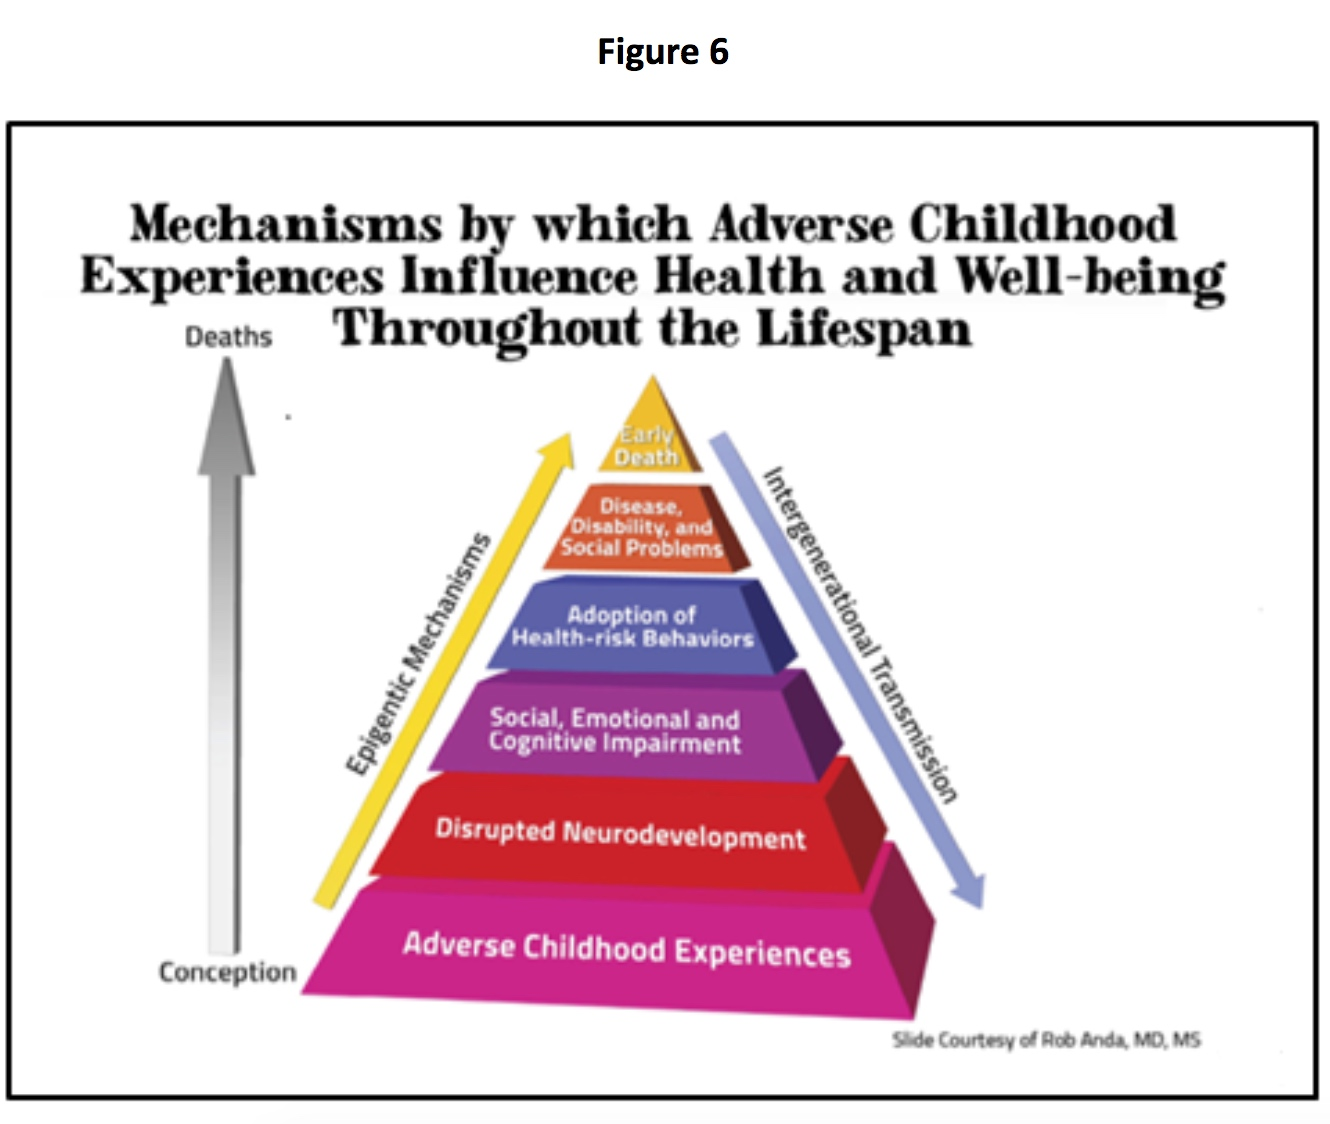 aces impacts through the life span pyramid